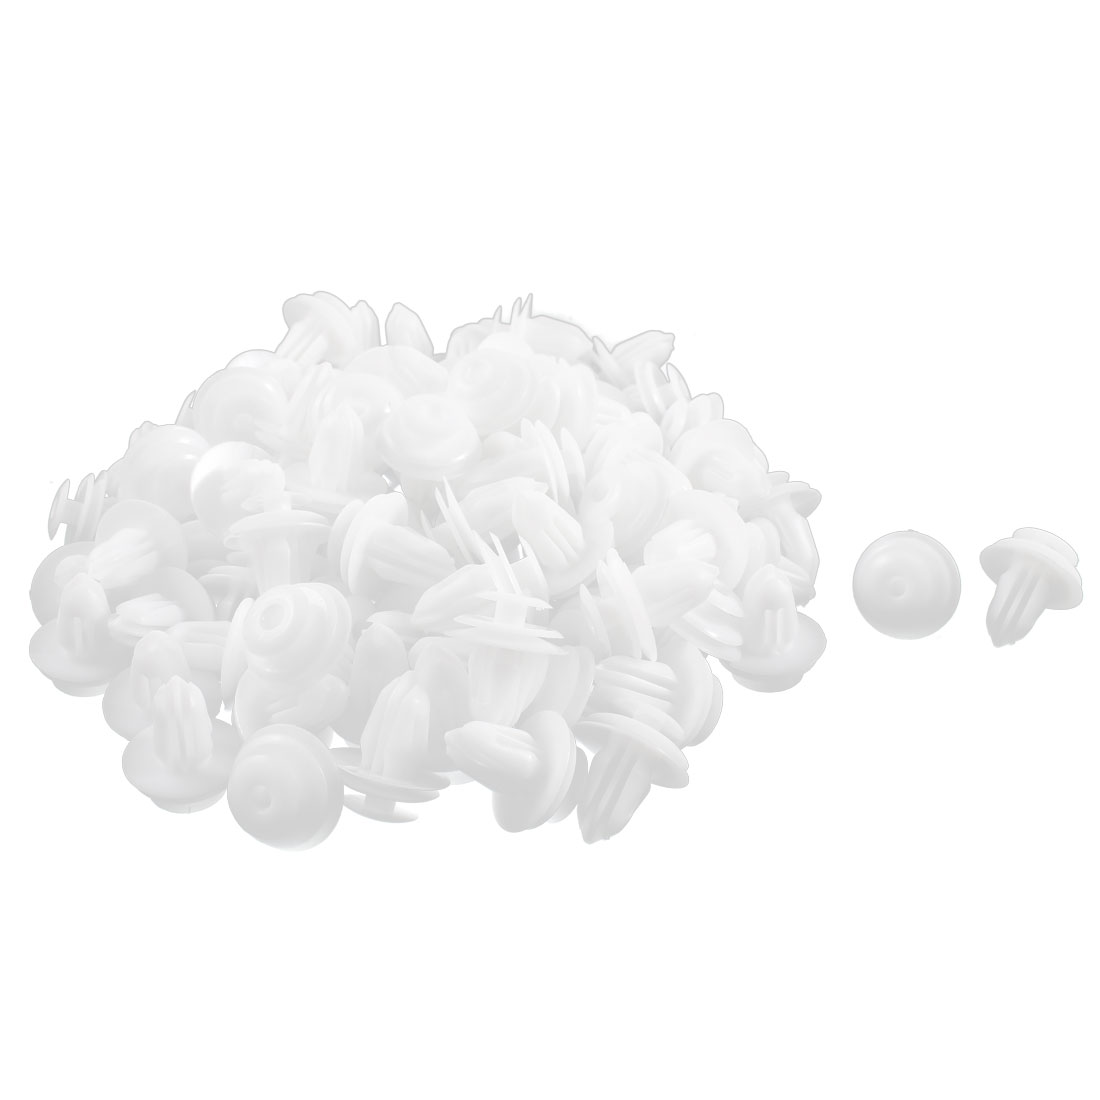 100 Pcs White Plastic Splash Carpet Moulding Mat Clips 8mm x 14mm x 18mm